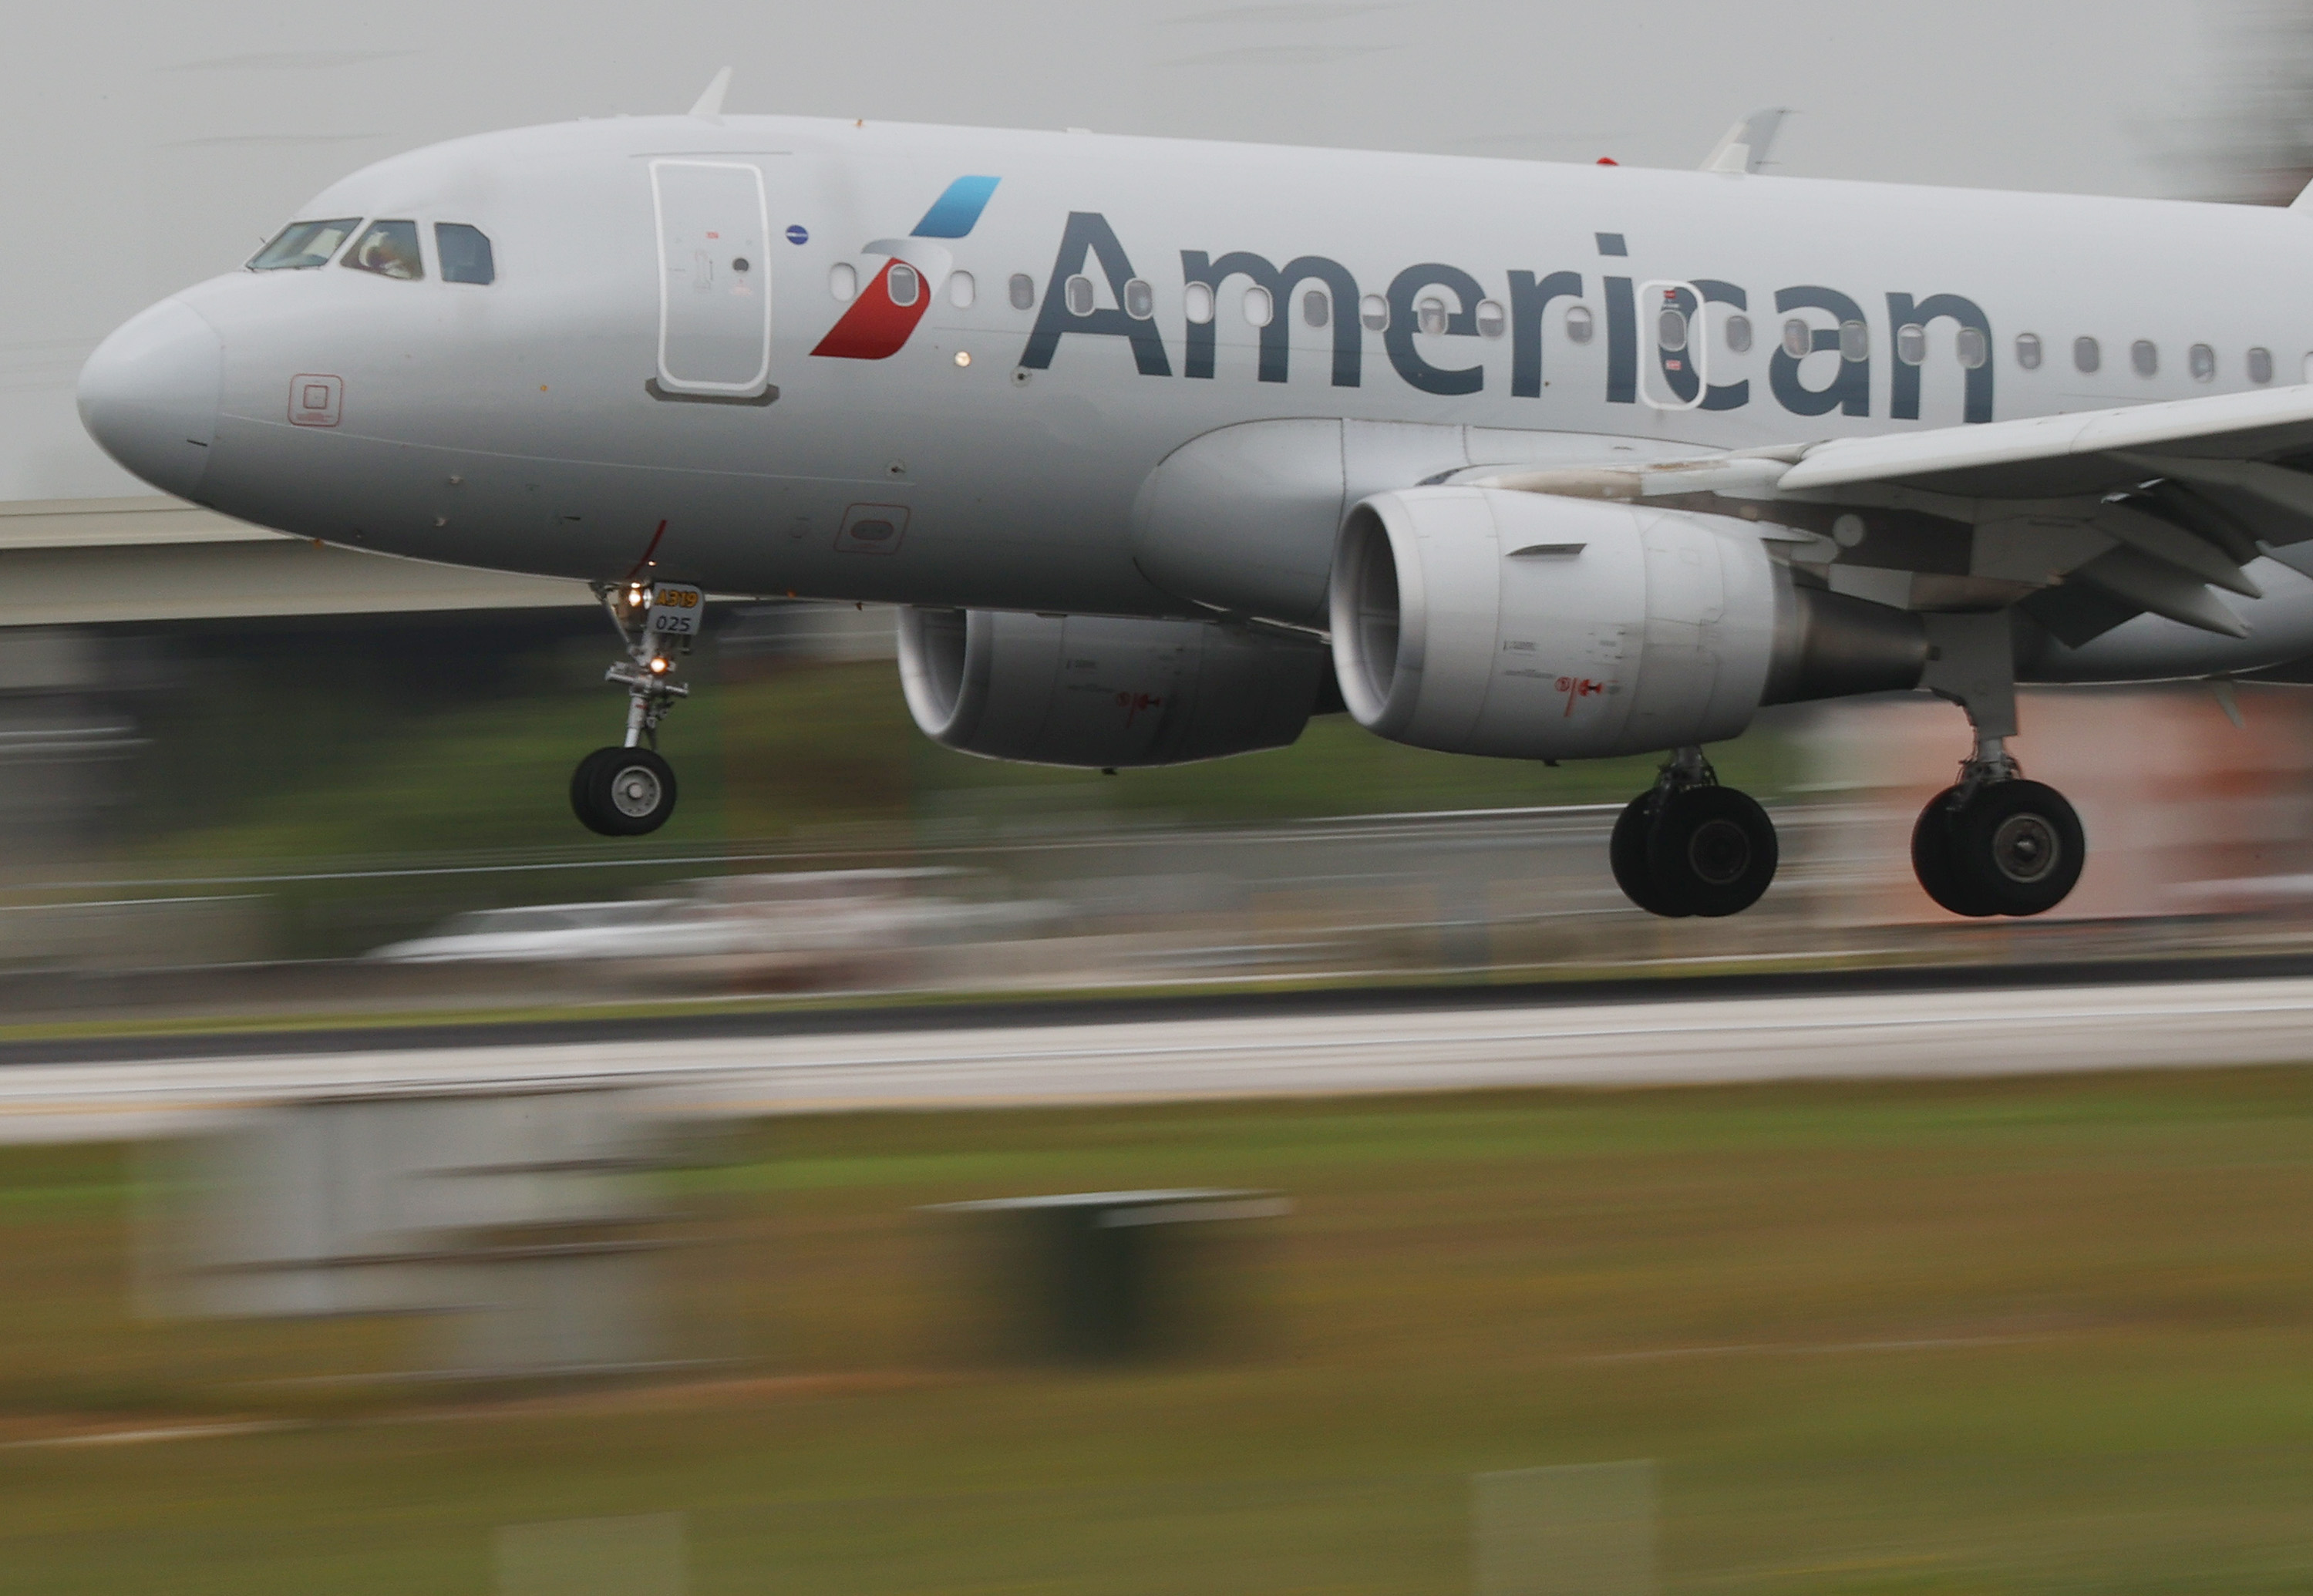 Fuel Shortage at U.S. Airports May Last Until Mid-August: American Airlines